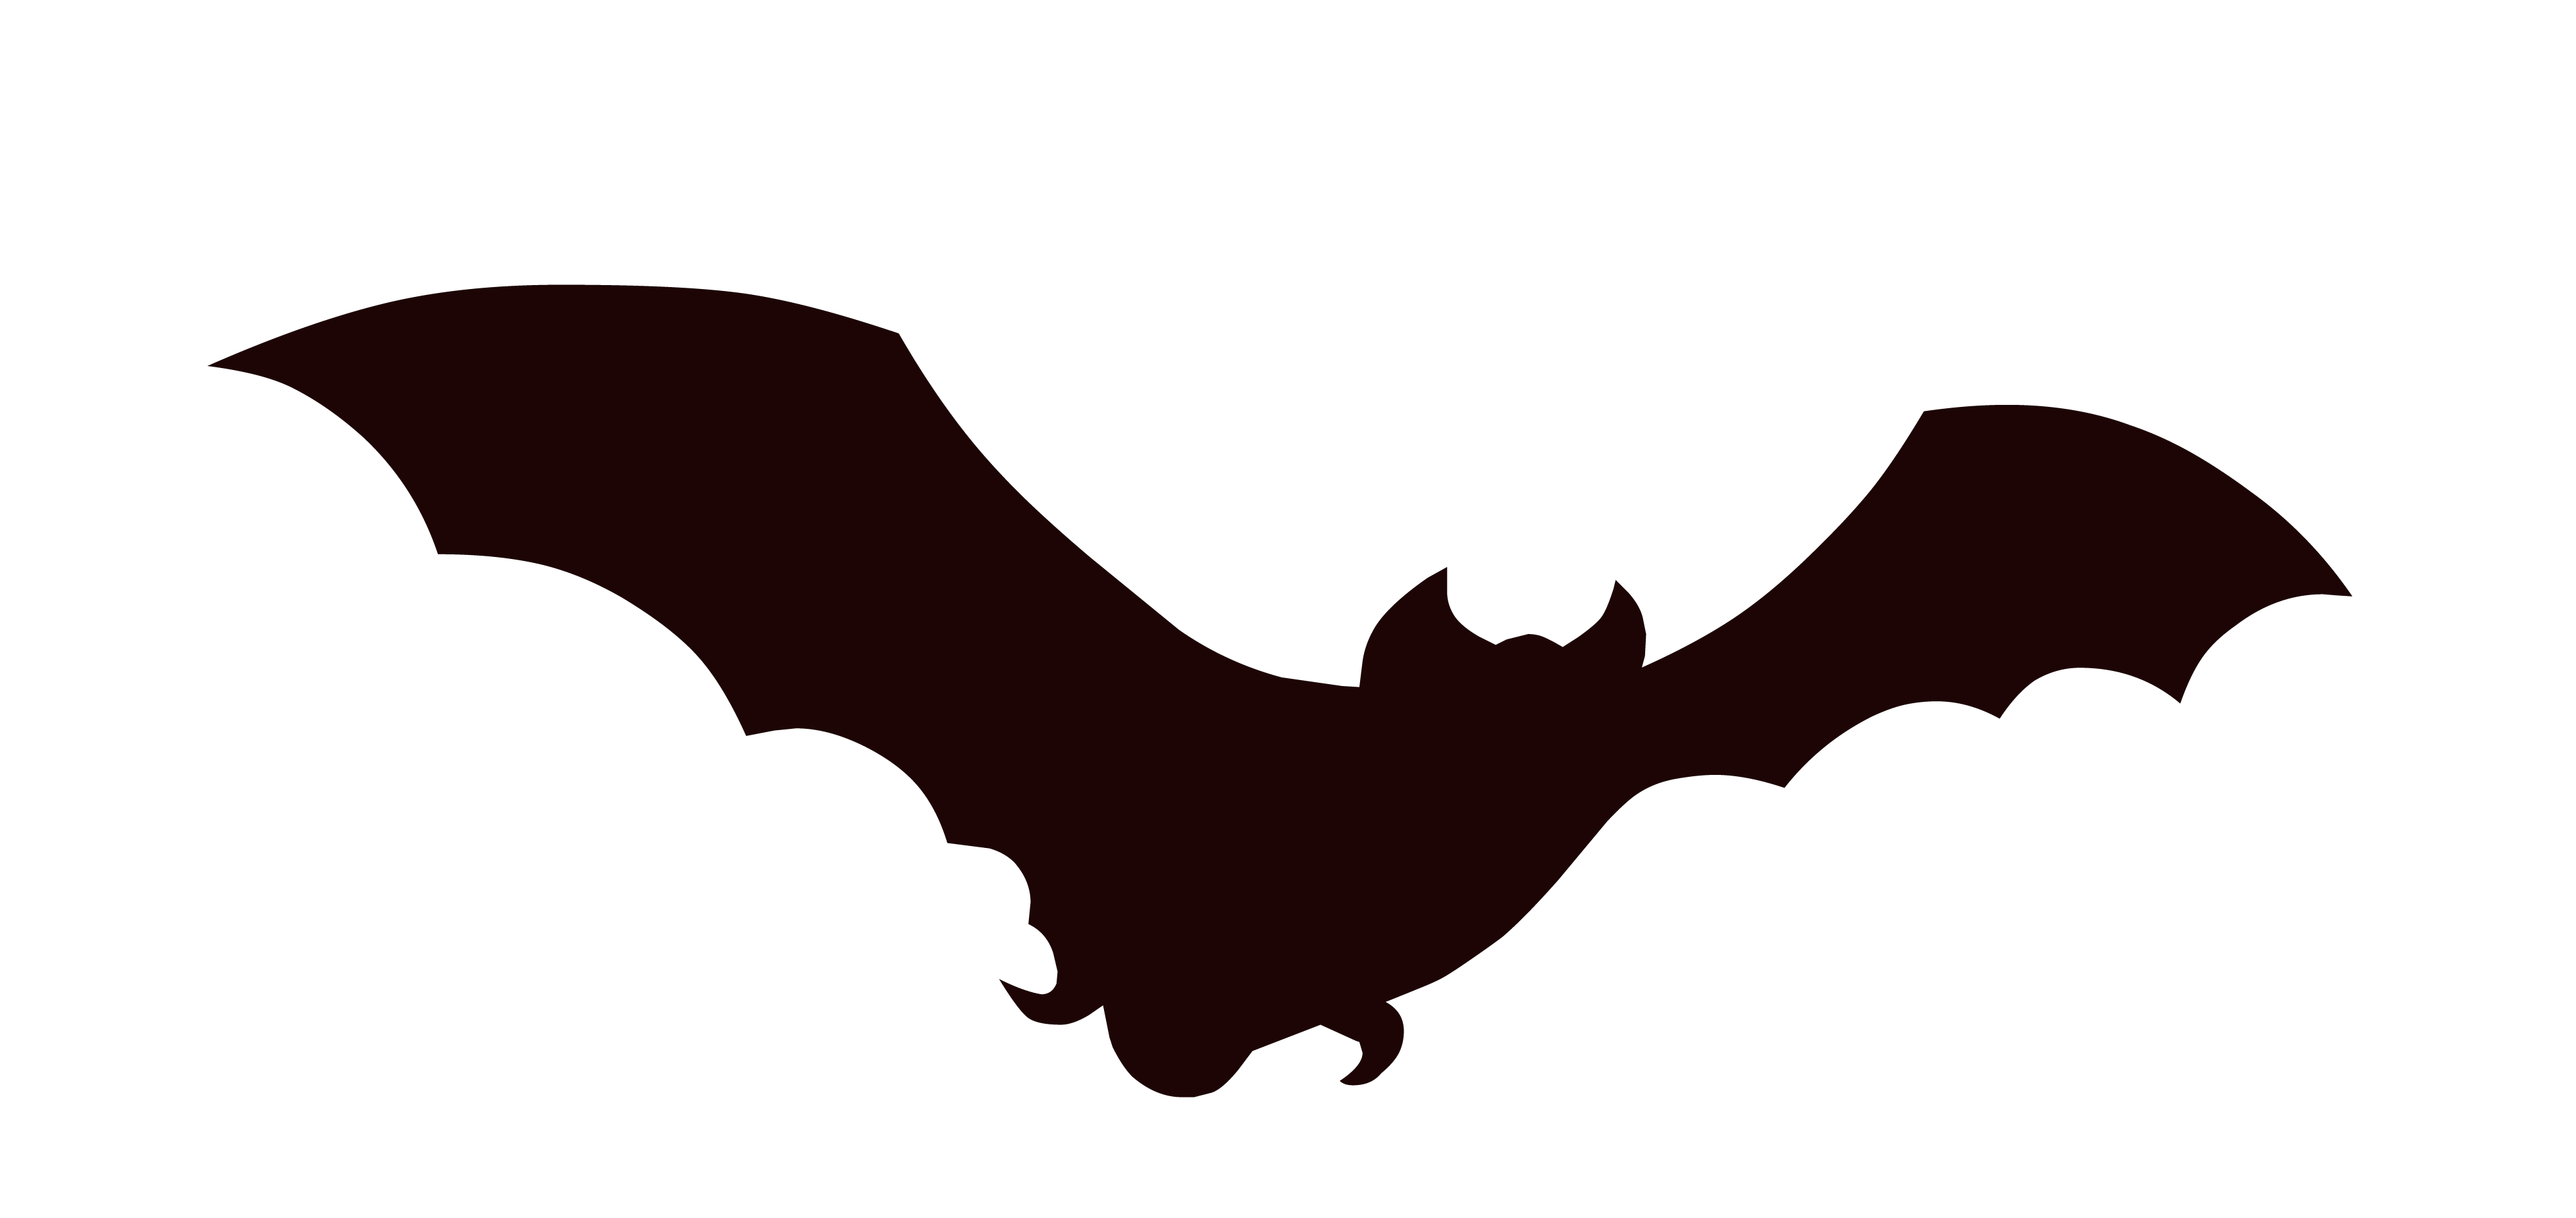 Silhouette at getdrawings com. Mango clipart bat